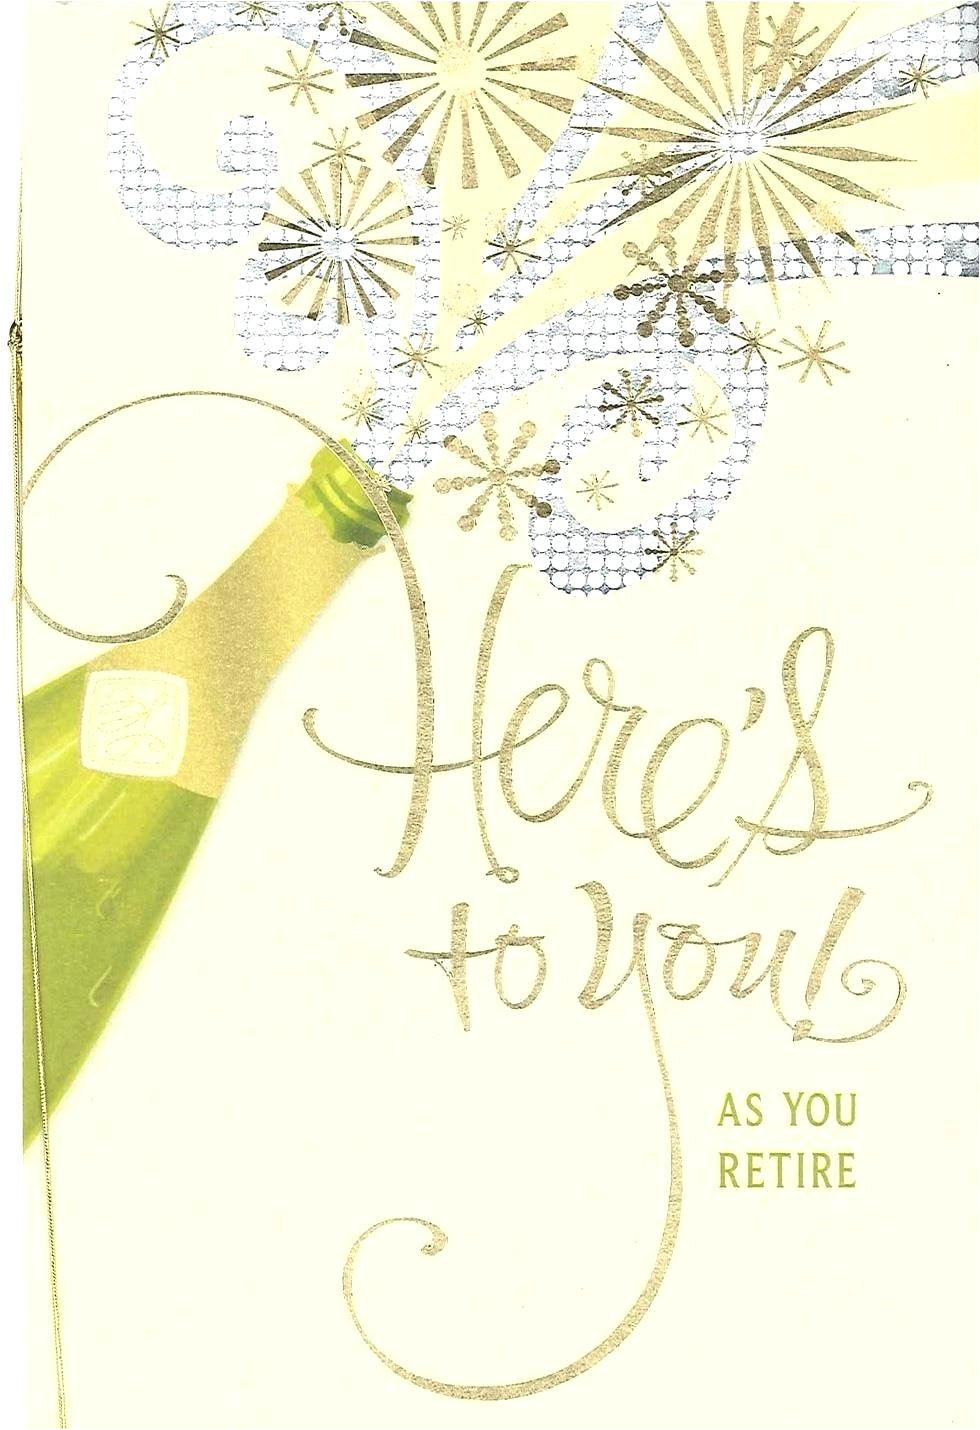 Best Wishes for Farewell Card Congratulations Cards Template In 2020 with Images